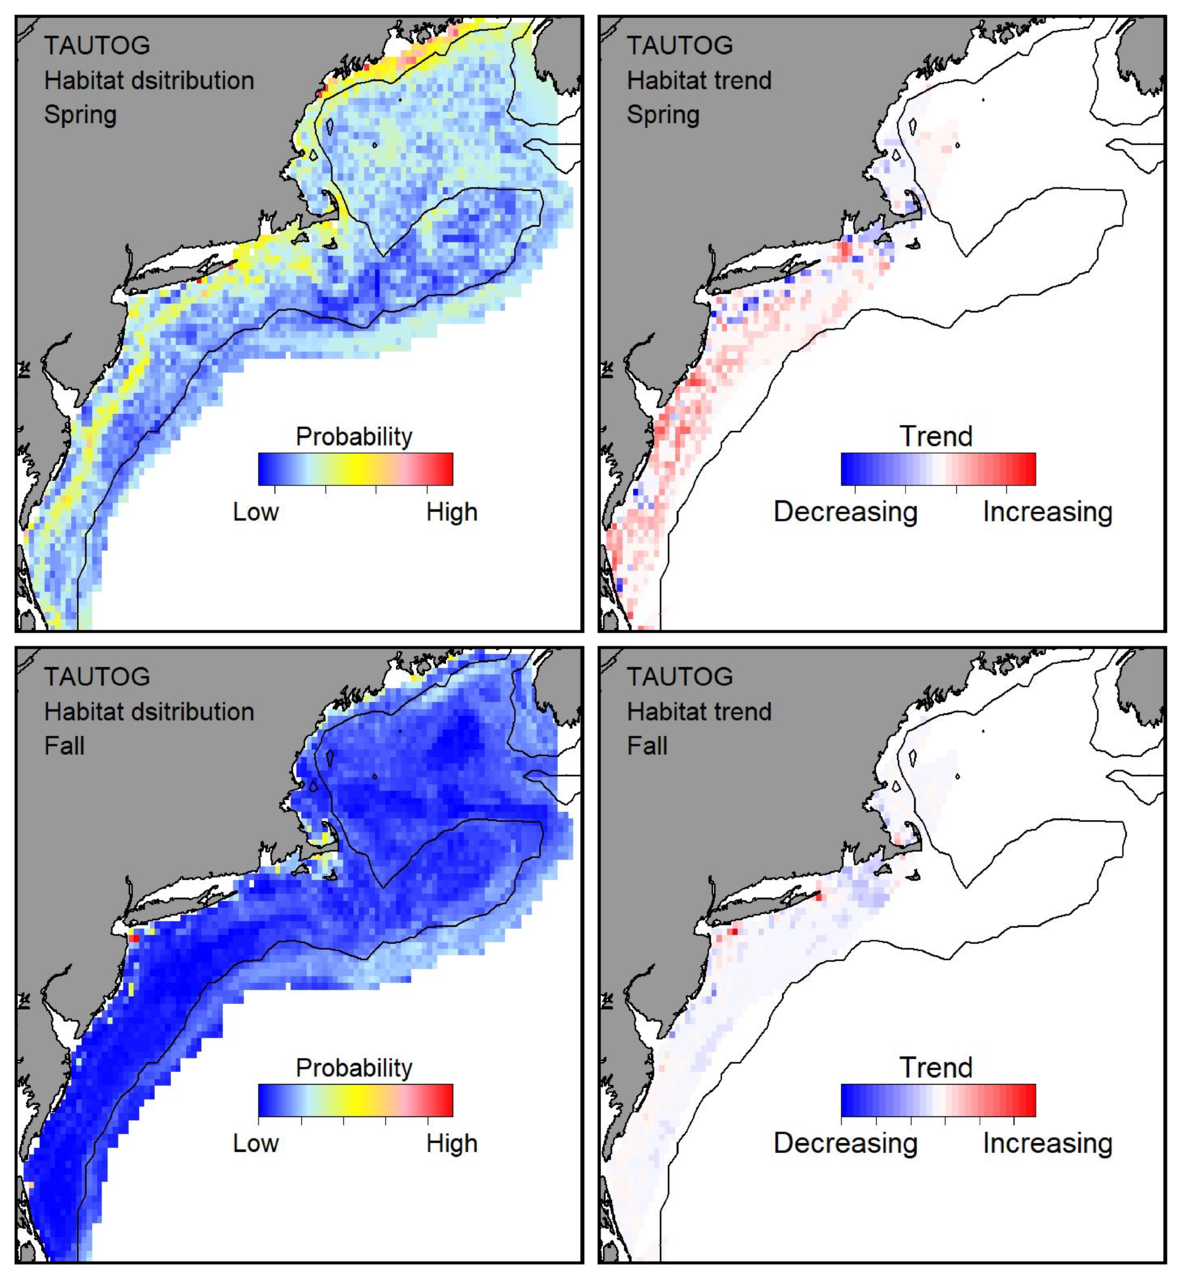 Probable habitat distribution for tautog showing the highest concentration and increasing trend in the Gulf of Maine during the spring. Bottom row: Probable habitat distribution for tautog showing the highest concentration and increasing trend in the Gulf of Maine during the fall.